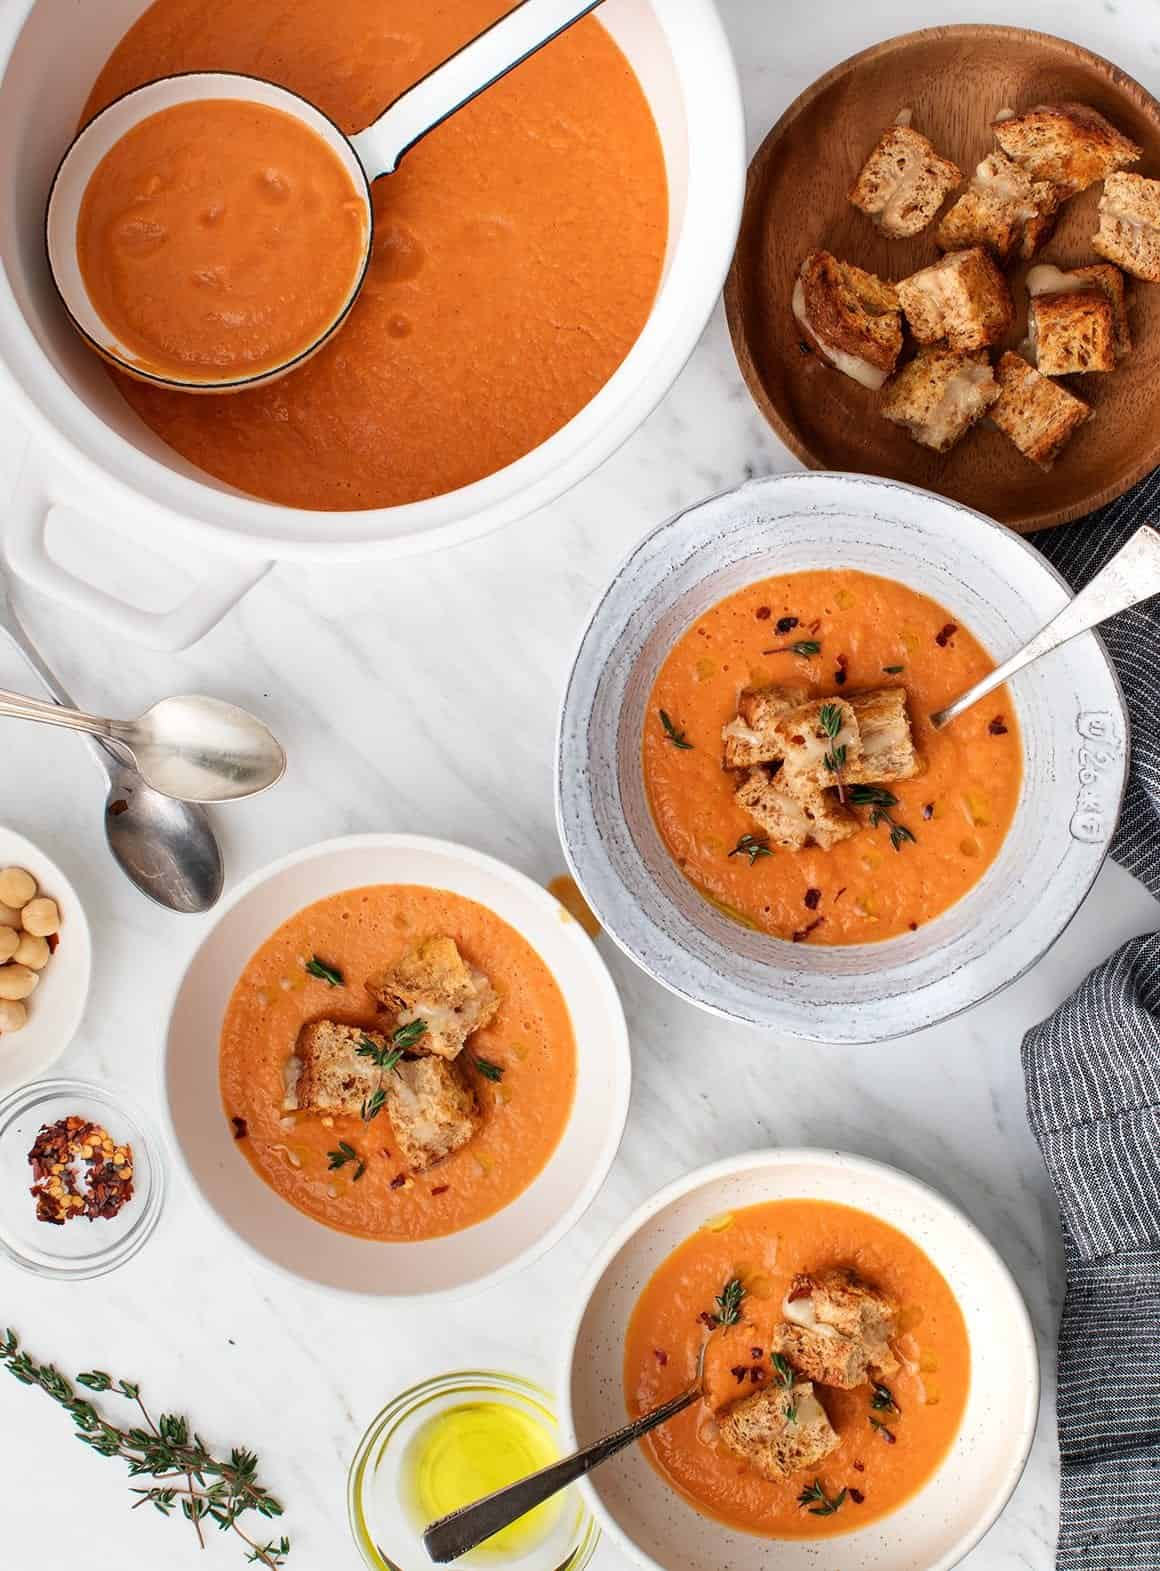 Creamy Vegan Tomato Soup with Grilled Cheese Croutons in bowls